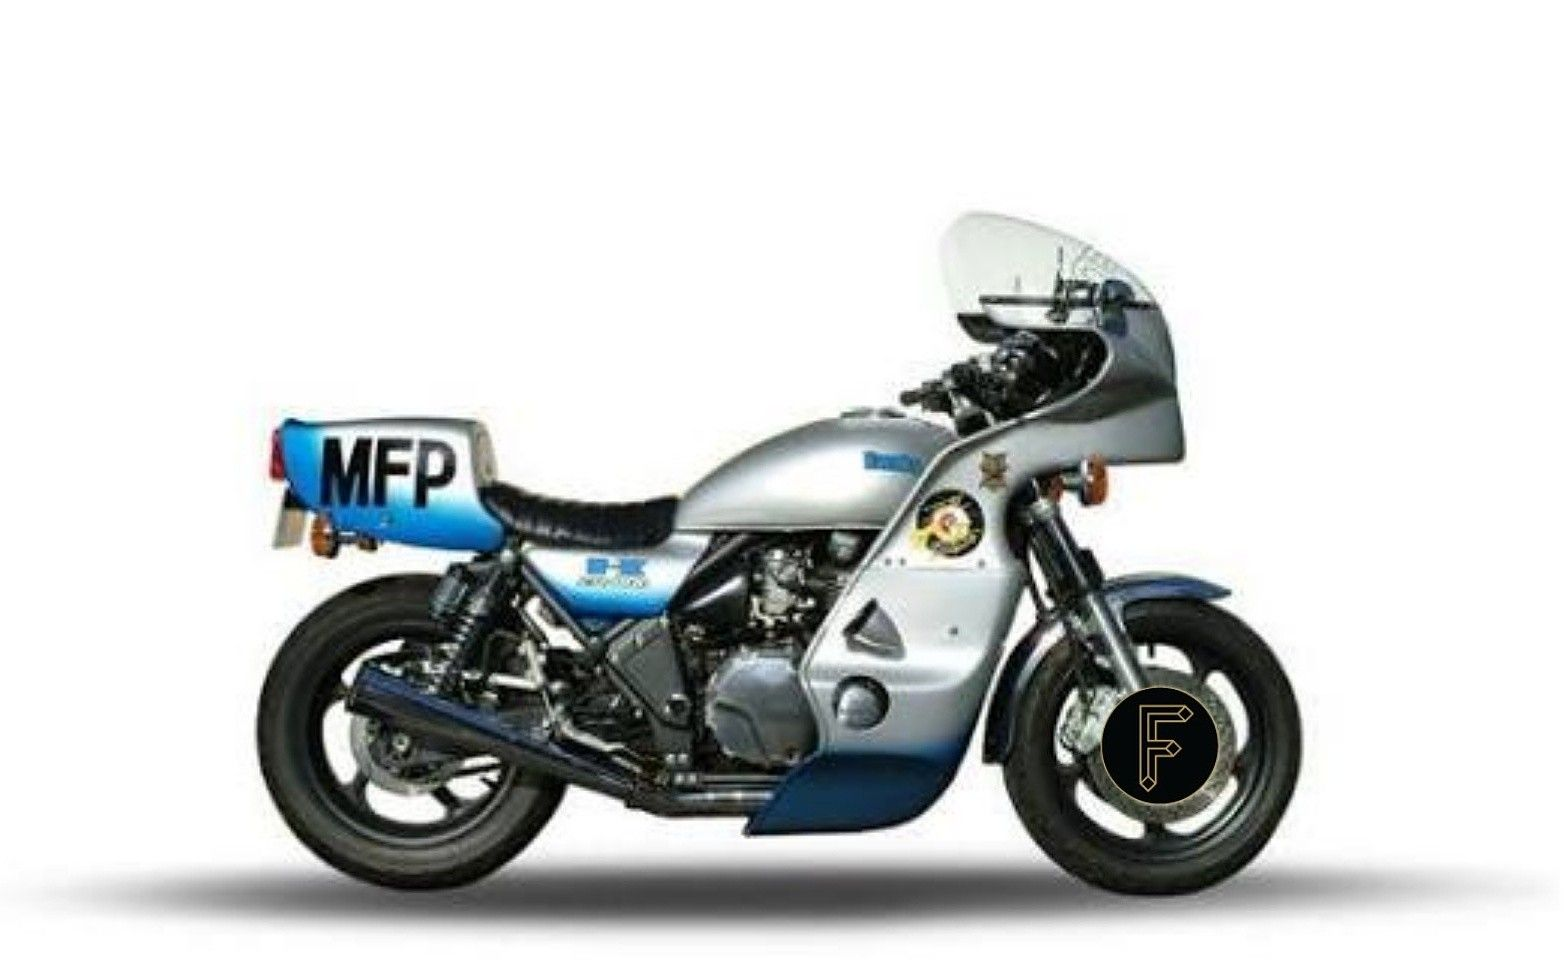 medium resolution of moto legends the most iconic motorcycles from fiction 1977 kawasaki kz1000p mad max 1979 firemotorcycle motolegend kawasaki